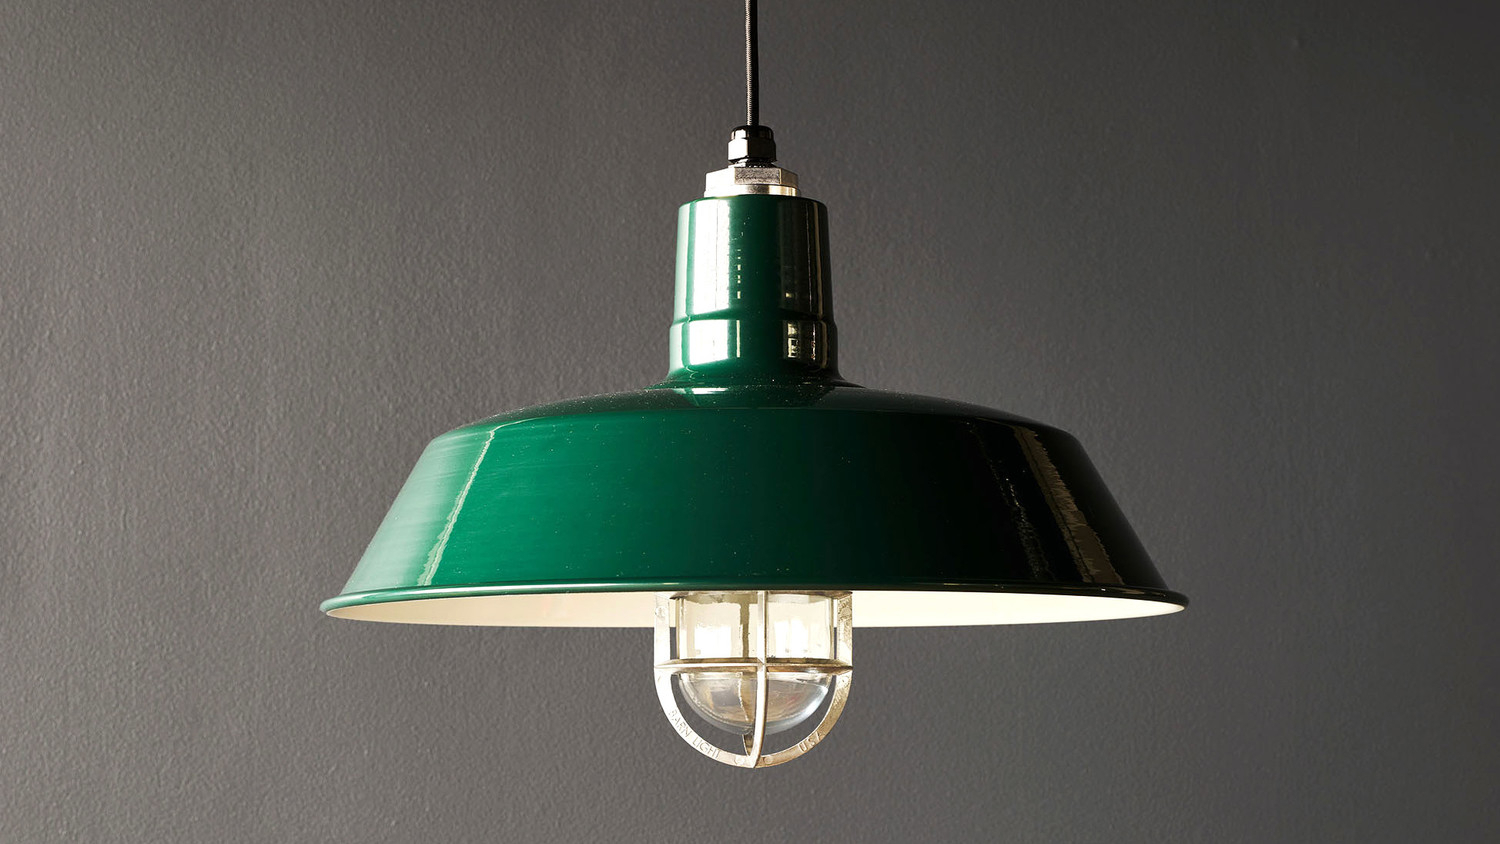 New Deal Alert: Willa Arlo Interiors Dilley 1 Light Unique Within Dilley 1 Light Unique / Statement Geometric Pendants (View 18 of 30)